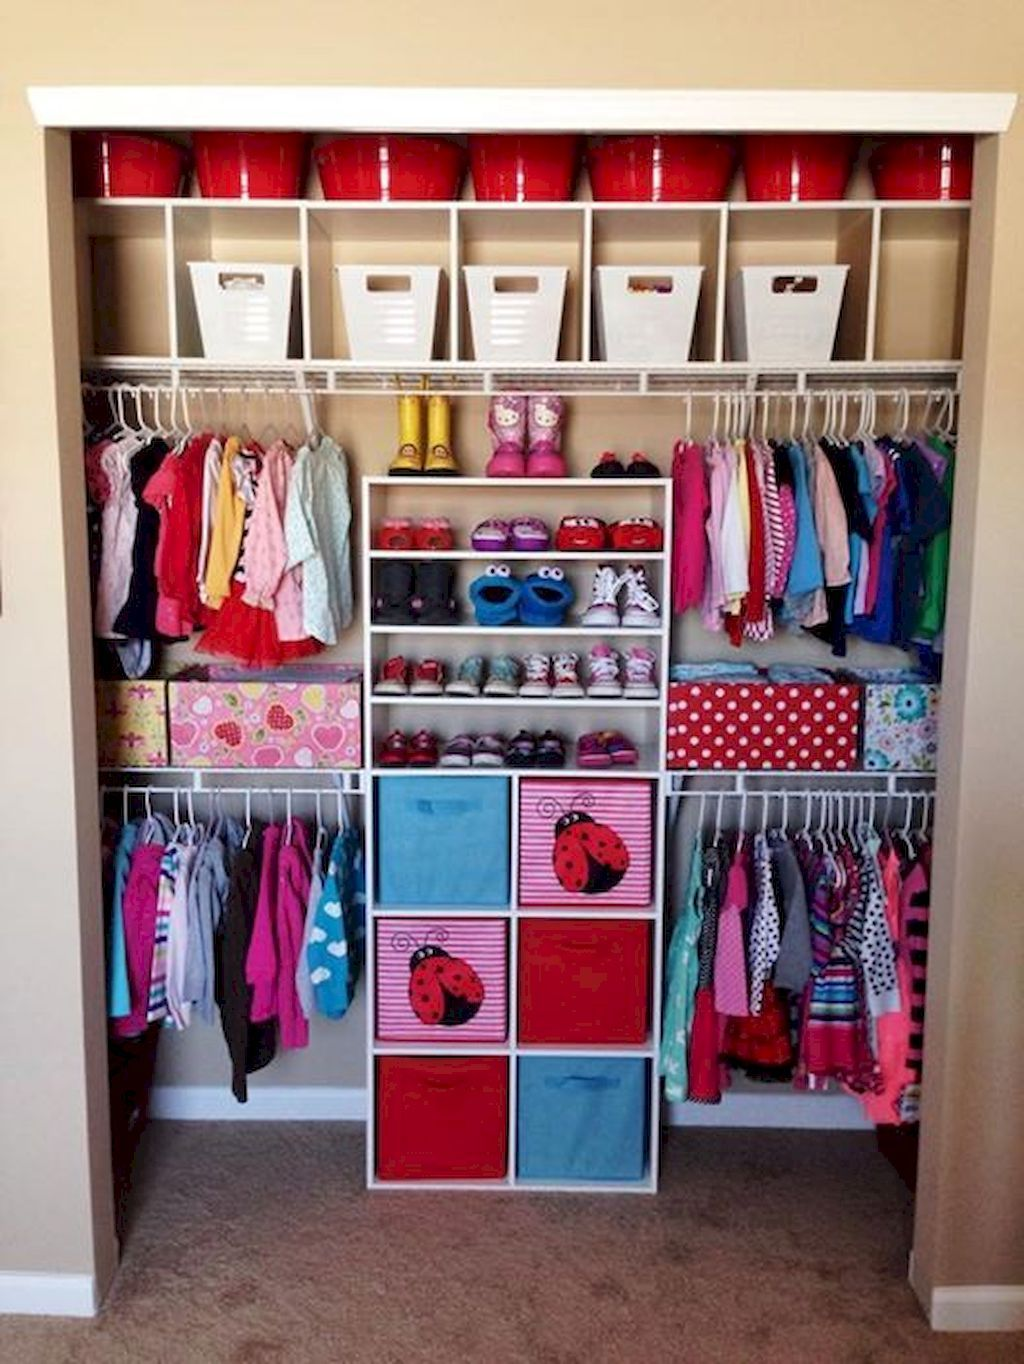 65 Clever Kids Bedroom Organization and Tips Ideas images